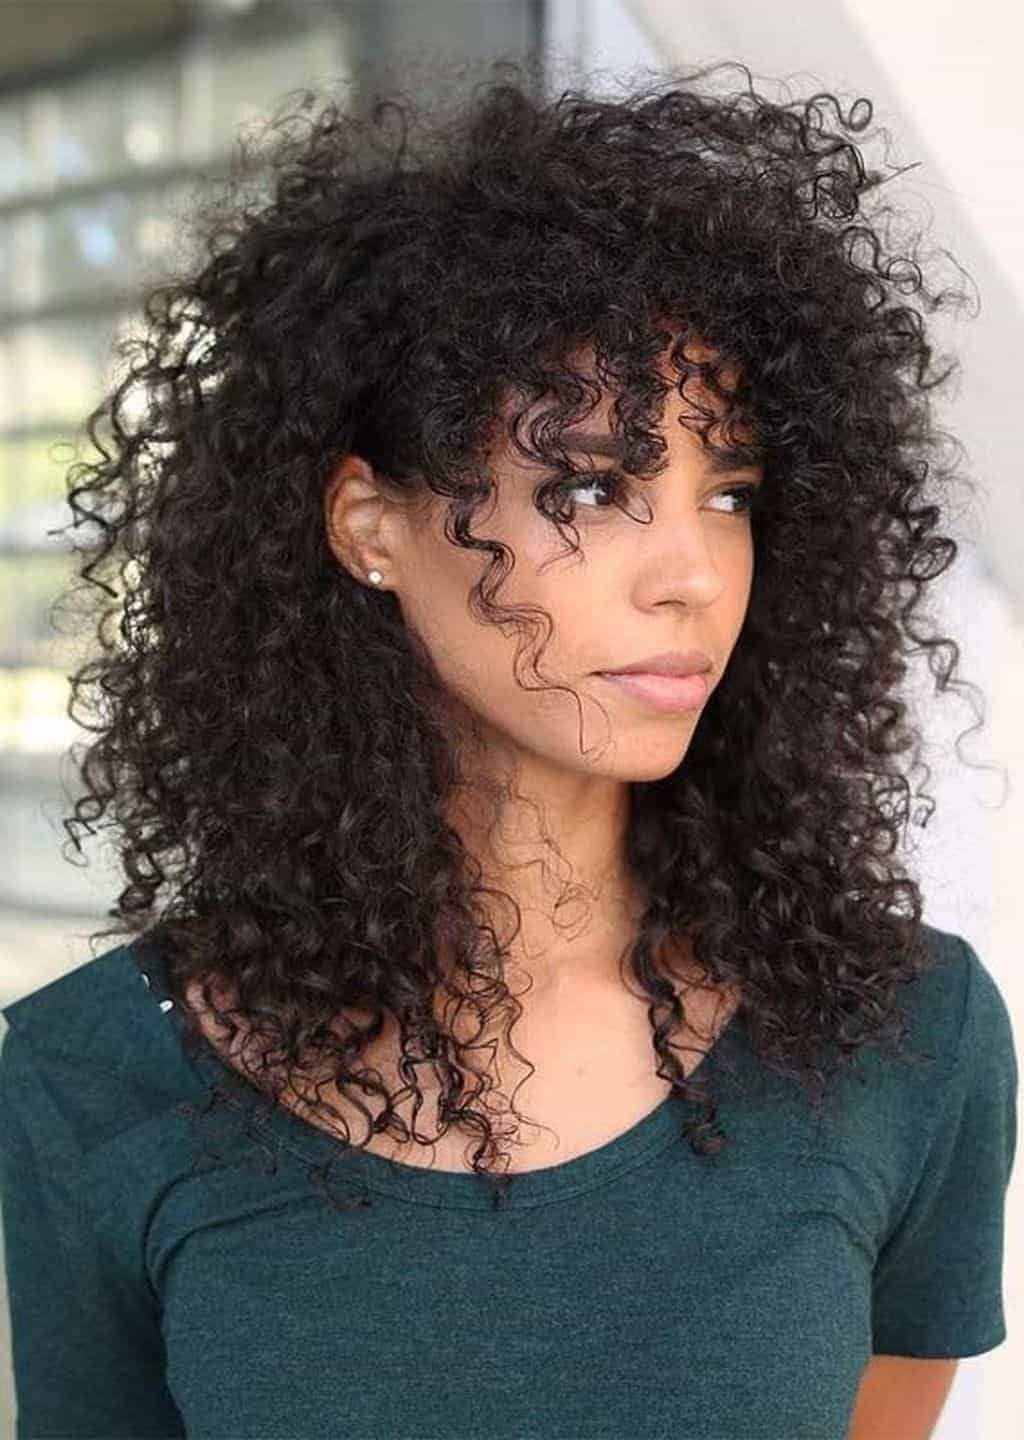 100 Hairstyles For Natural Hair You Ll Really Like Thrivenaija In 2020 Curly Hair Styles Natural Hair Styles Curly Hair Styles Naturally